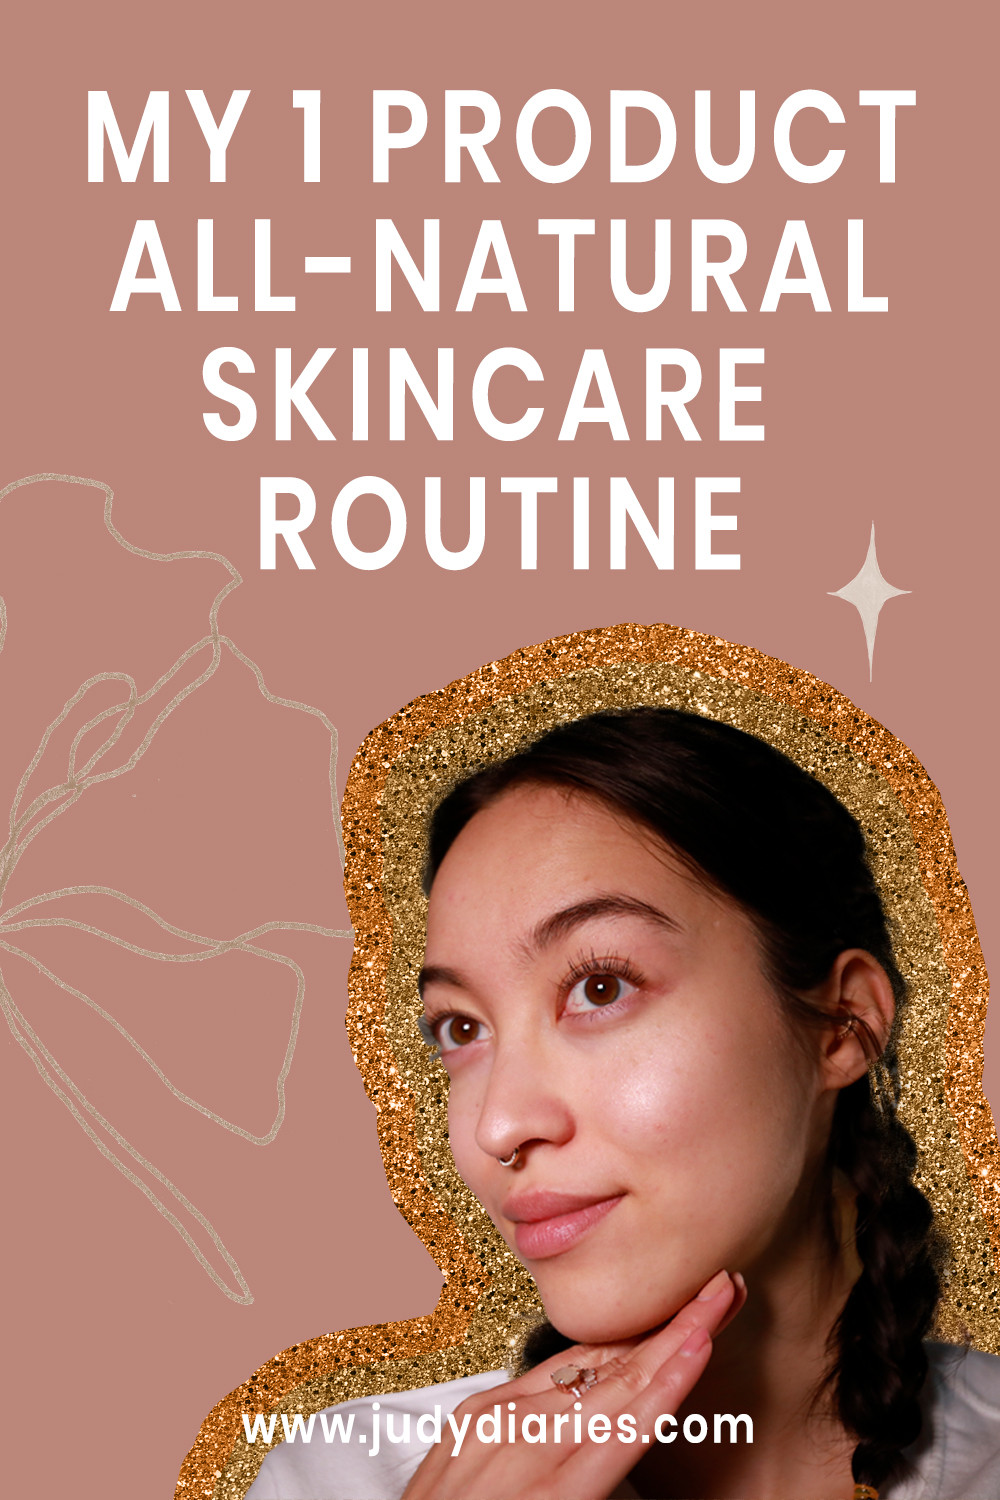 all natural minimal skin care routine for acne and oily skin judy diaries